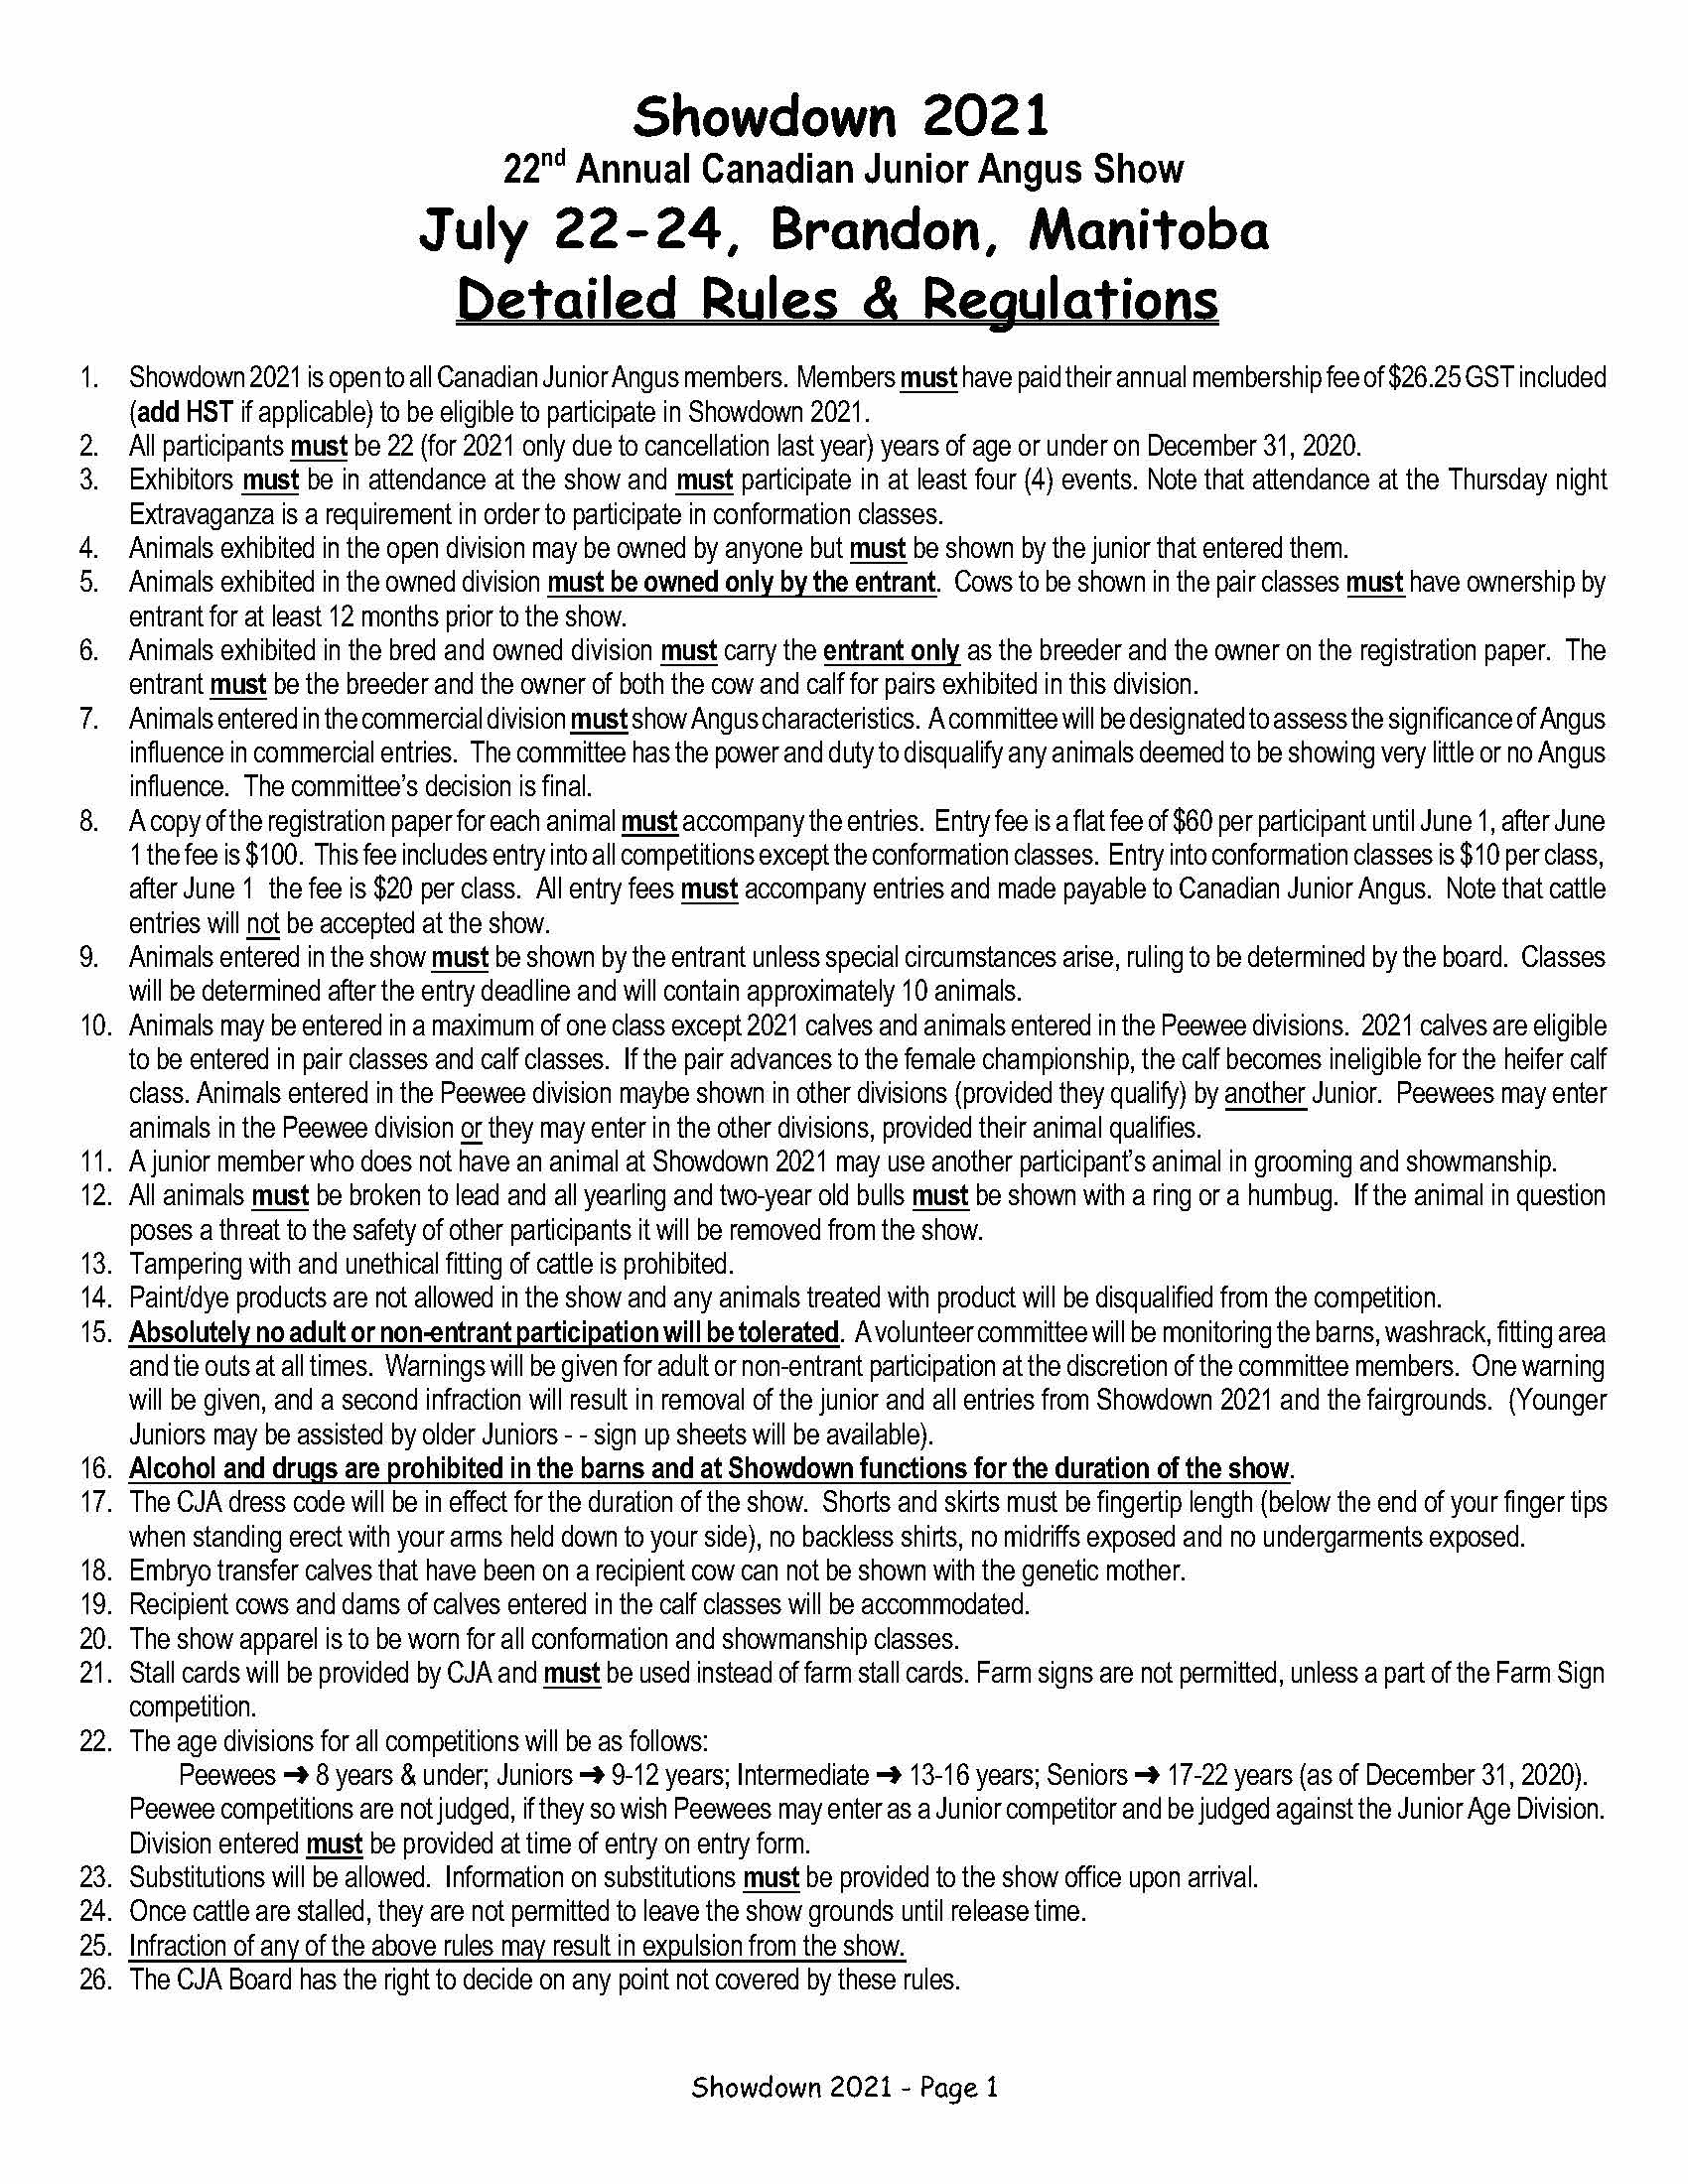 Rules Regulations (Detailed) 2021_Page_1